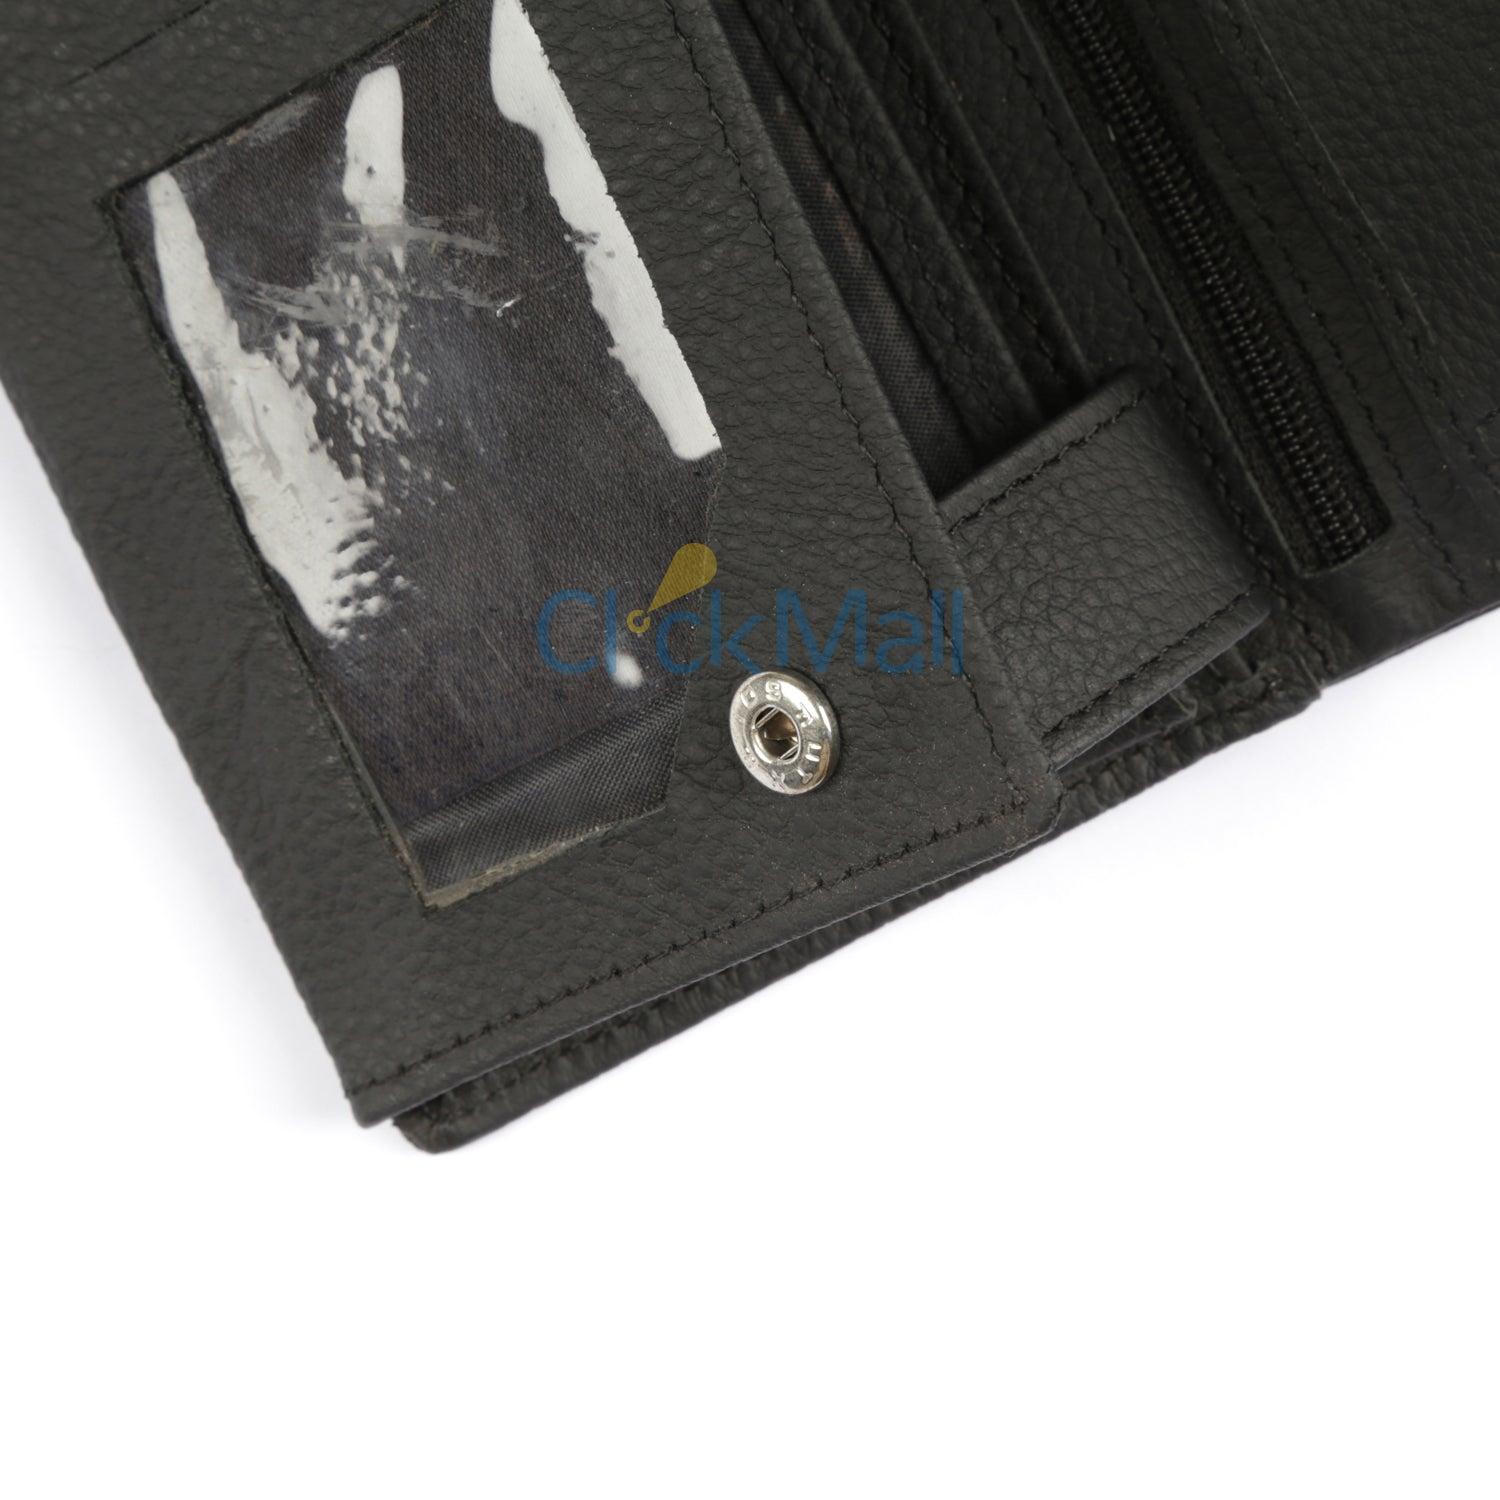 Sheikh Leather Black Leather Wallet-01 SLC-WA-Mild